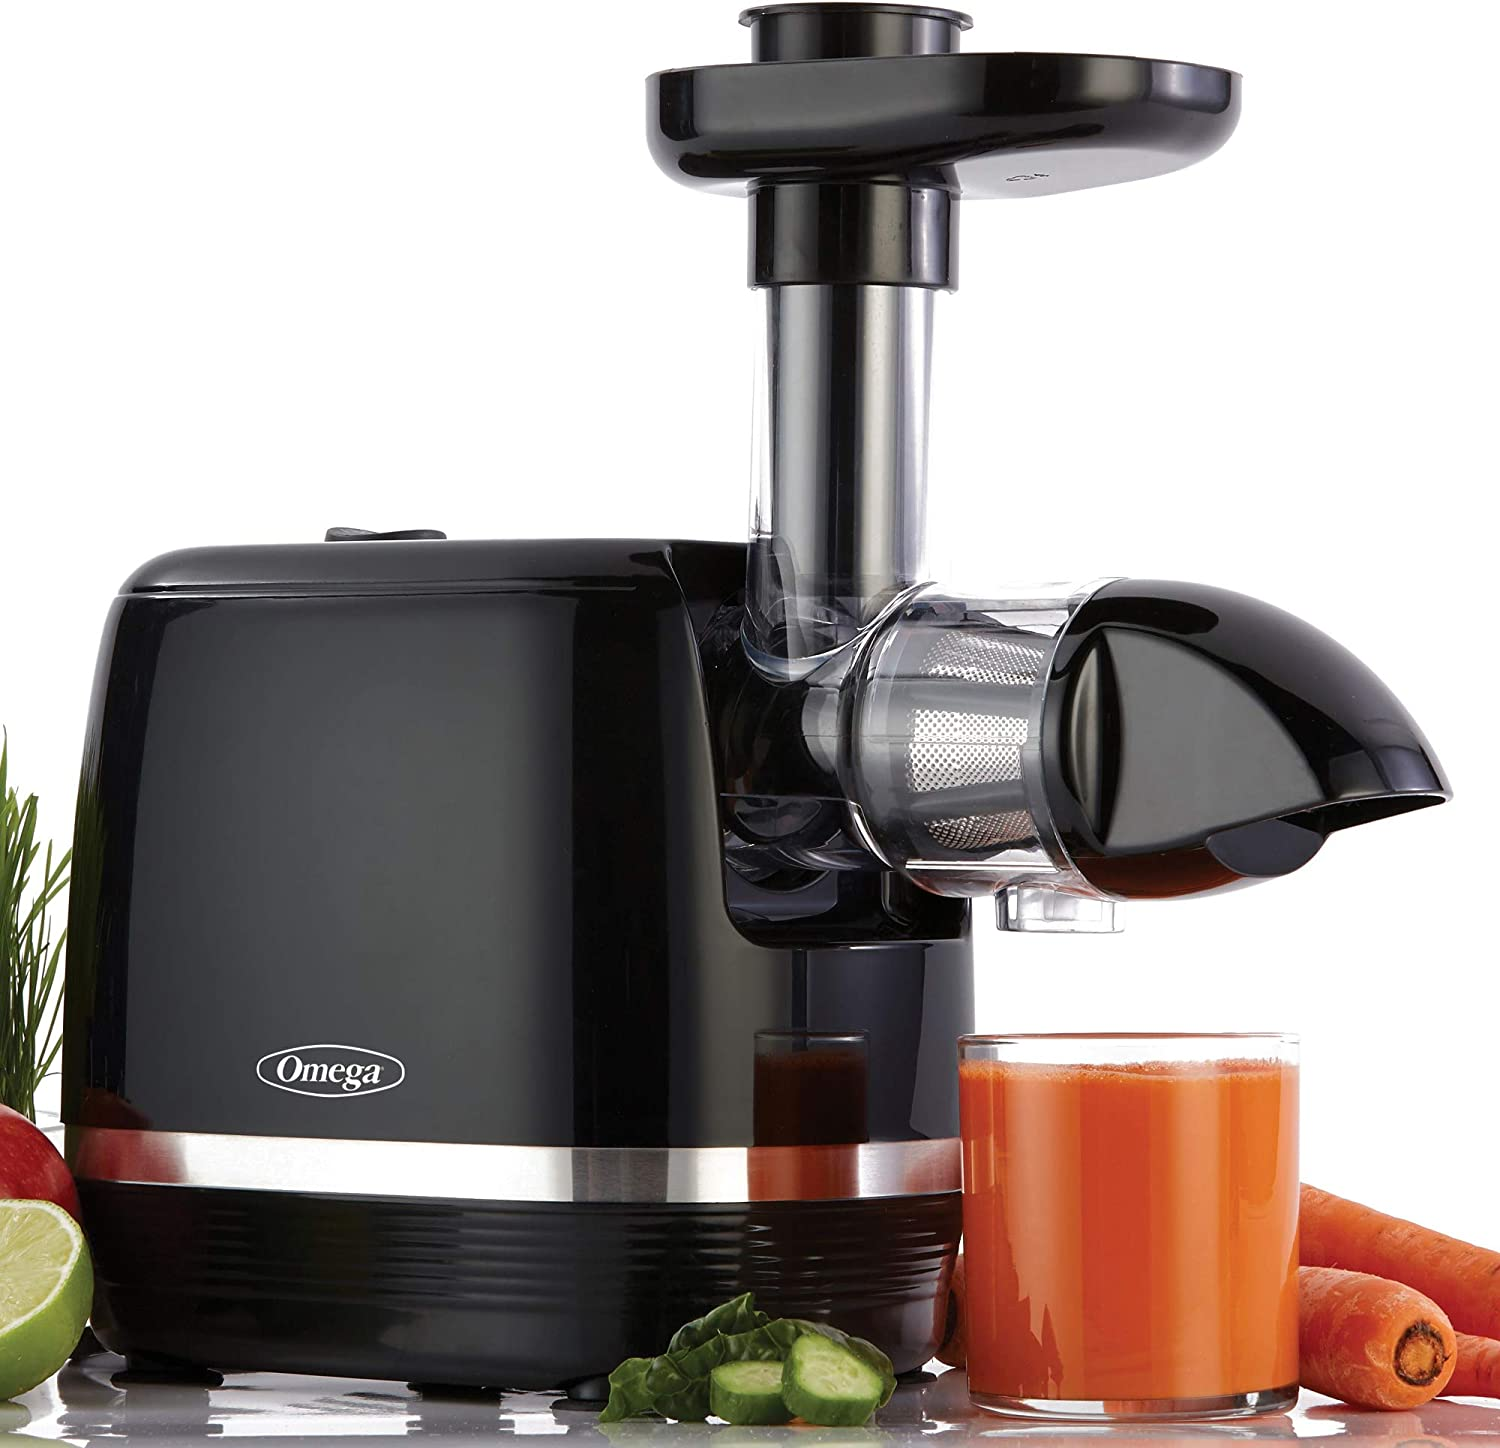 714bQNBmPeL. AC SL1500 The Best Masticating Juicer 2021 - Reviews & Buyer's Guide